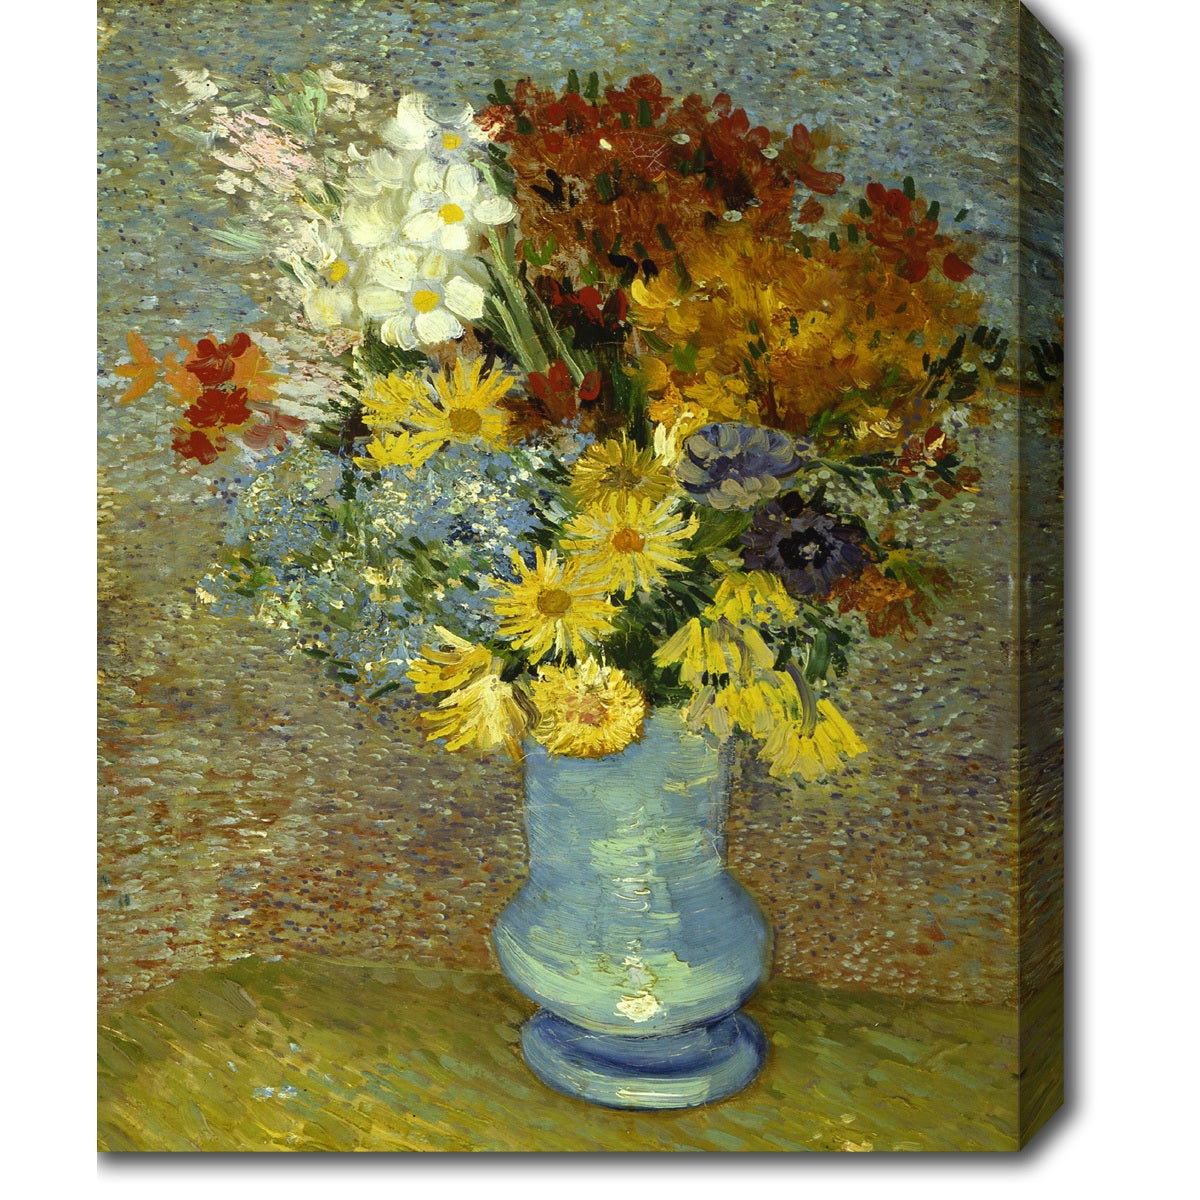 Vincent van gogh flowers in a blue vase oil on canvas art ebay vincent van gogh flowers in a blue vase oil on canvas art reviewsmspy